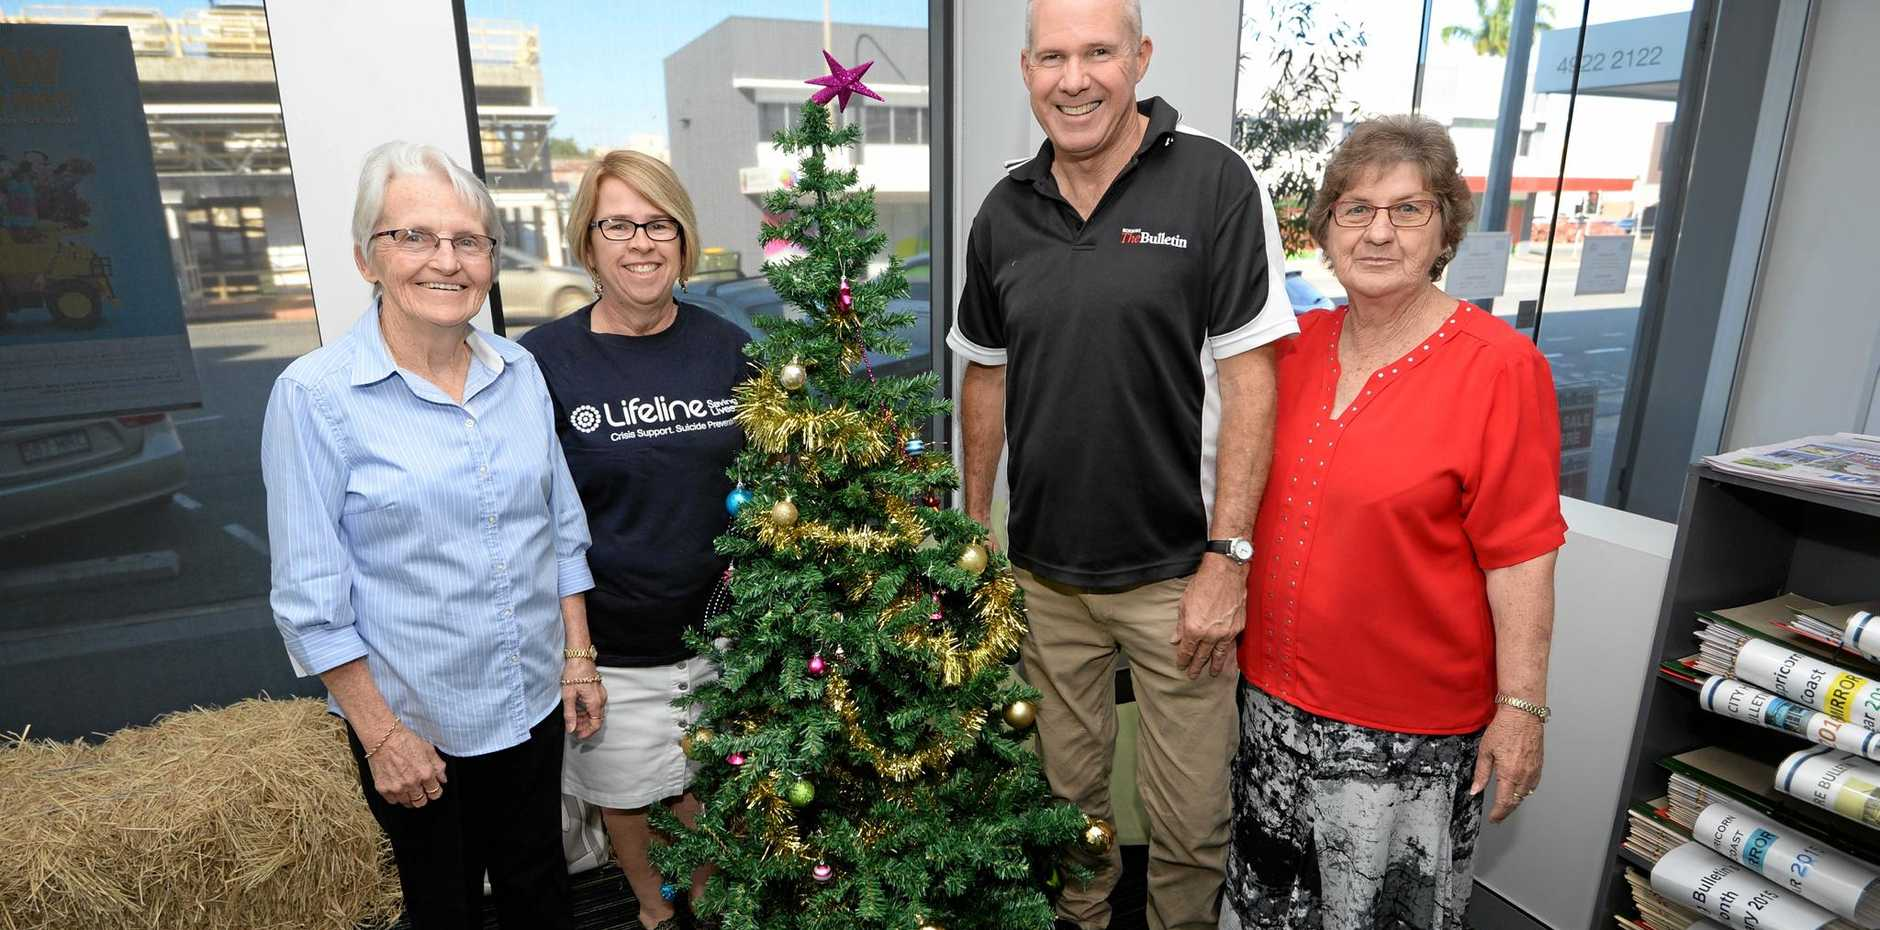 TIS THE SEASON: Barb Cavanagh (St Vincent De Paul), Julie Elliott (Lifeline), Frazer Pearce (Morning Bulletin) and Diana Wode (Anglicare) are calling on people to Adopt a Family this Christmas.